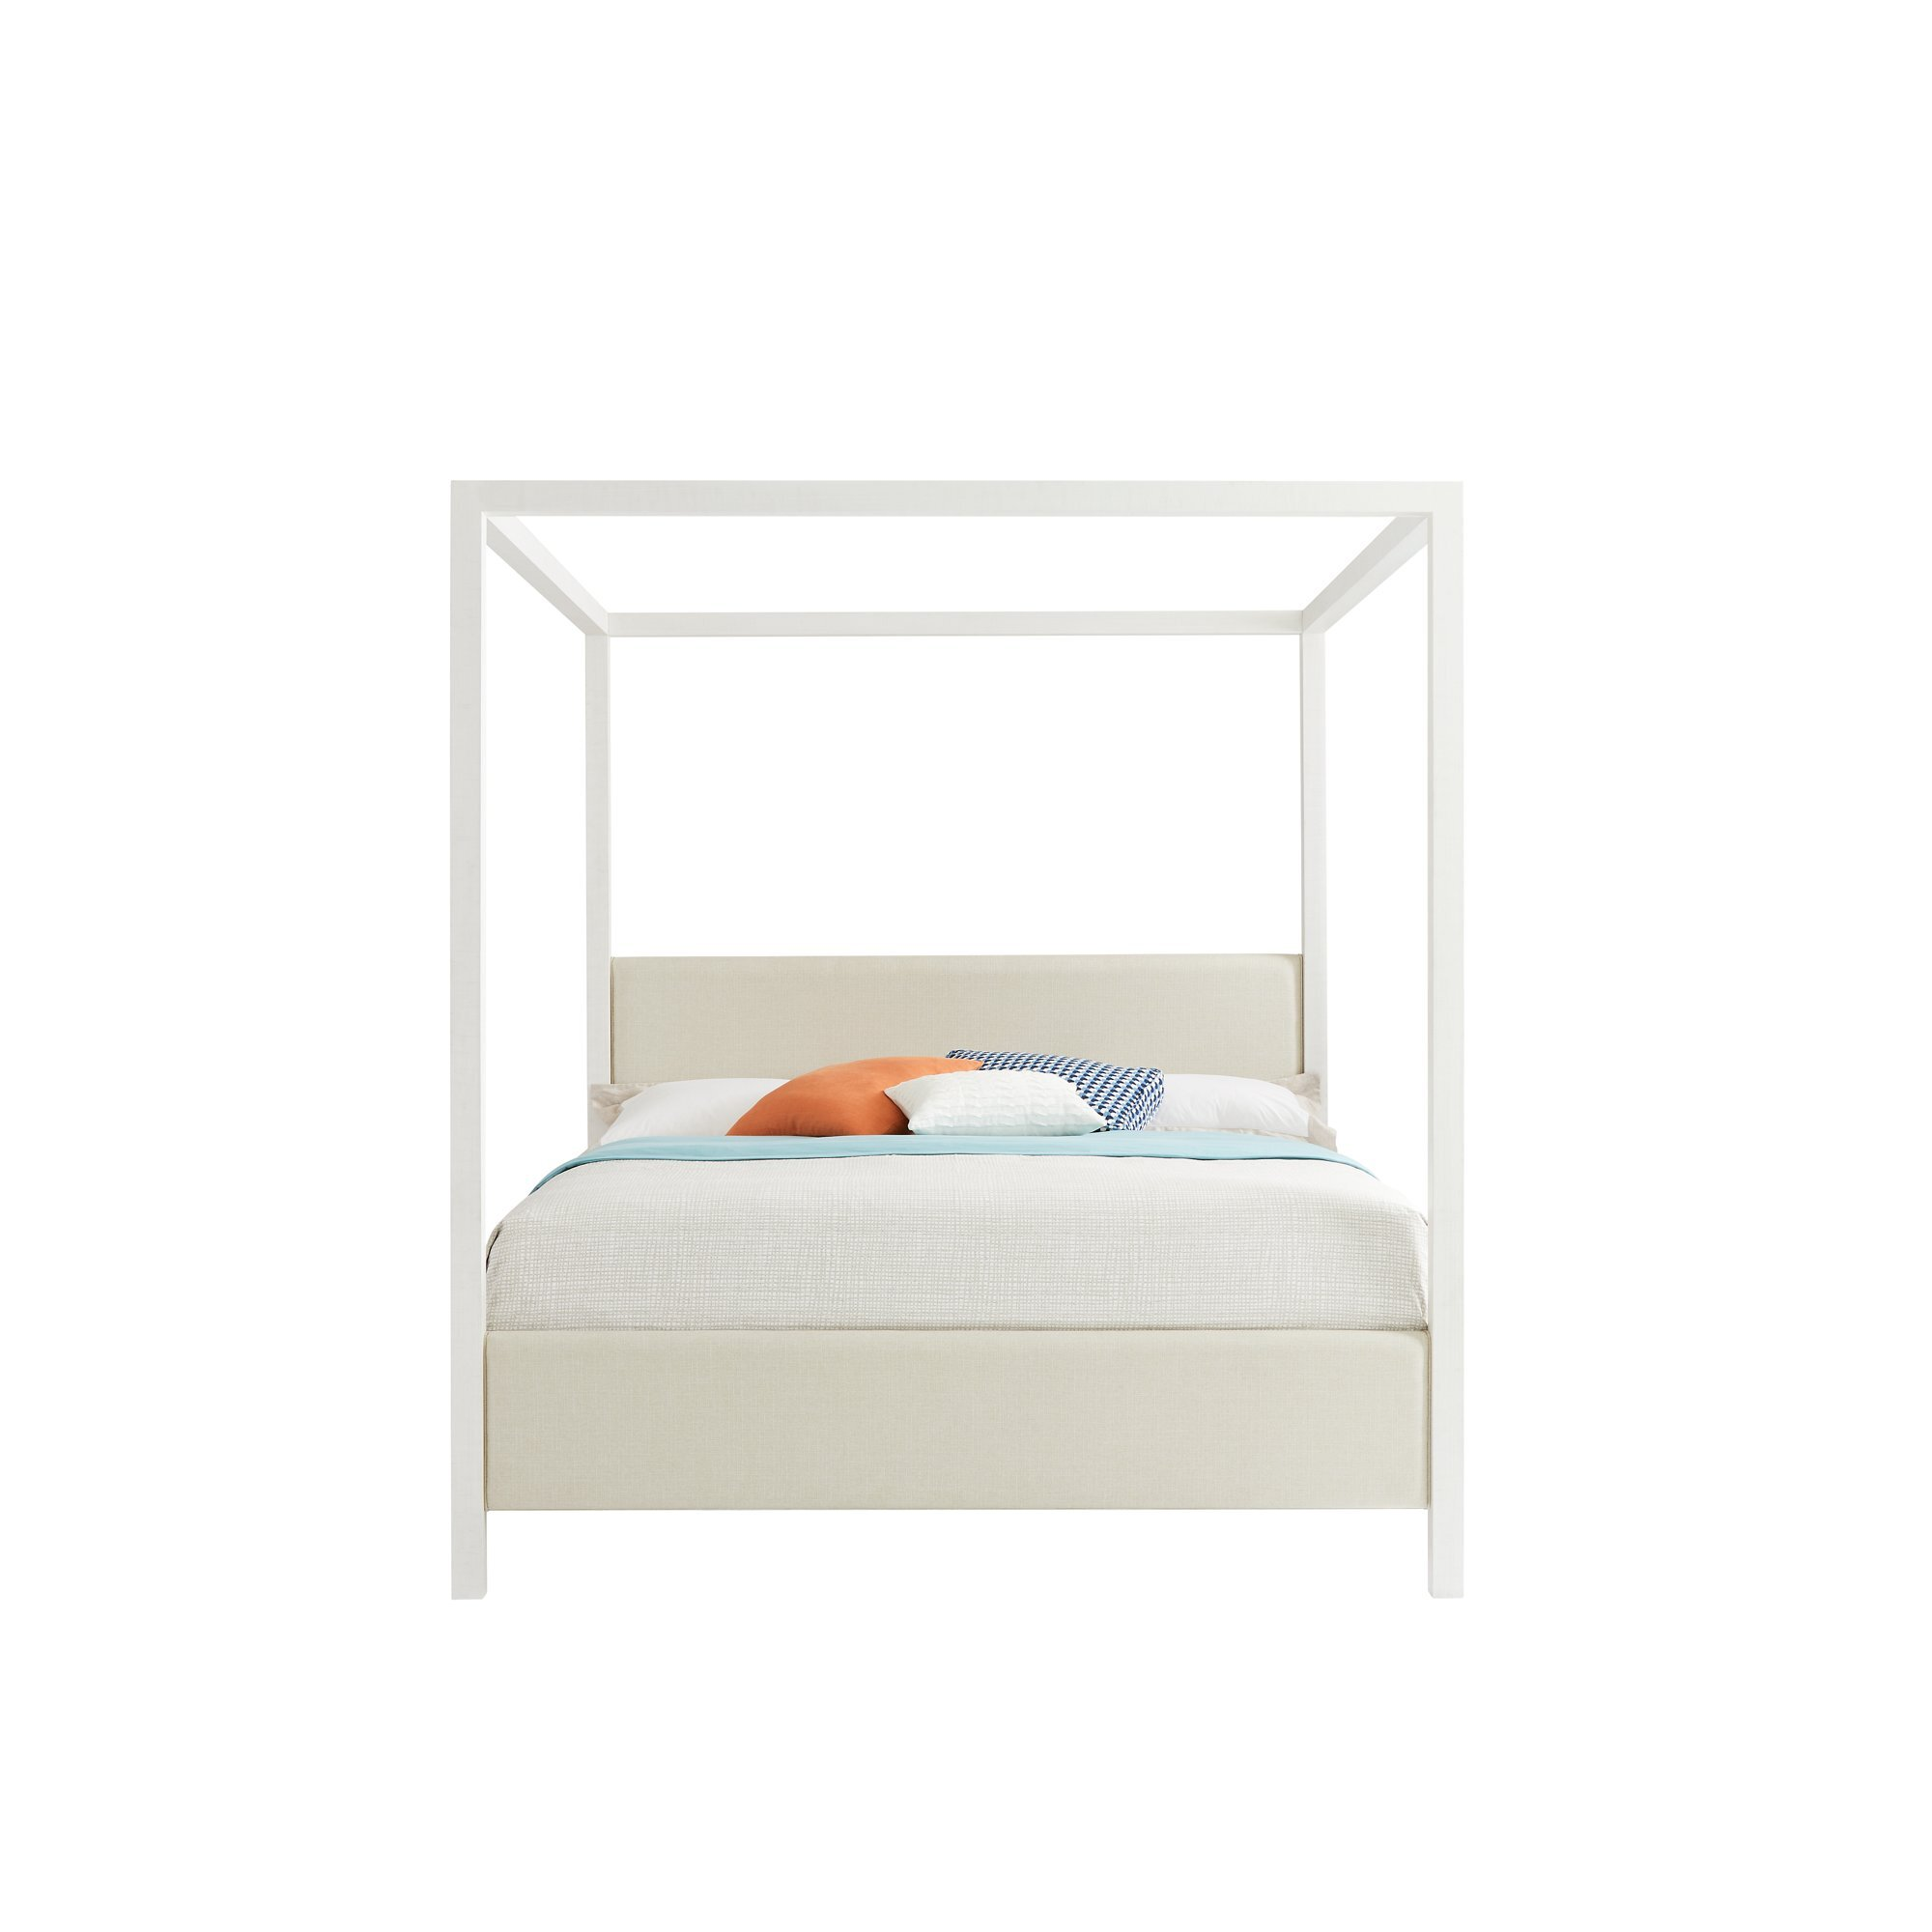 Upholstered White Canopy Beds You Ll Love In 2021 Wayfair